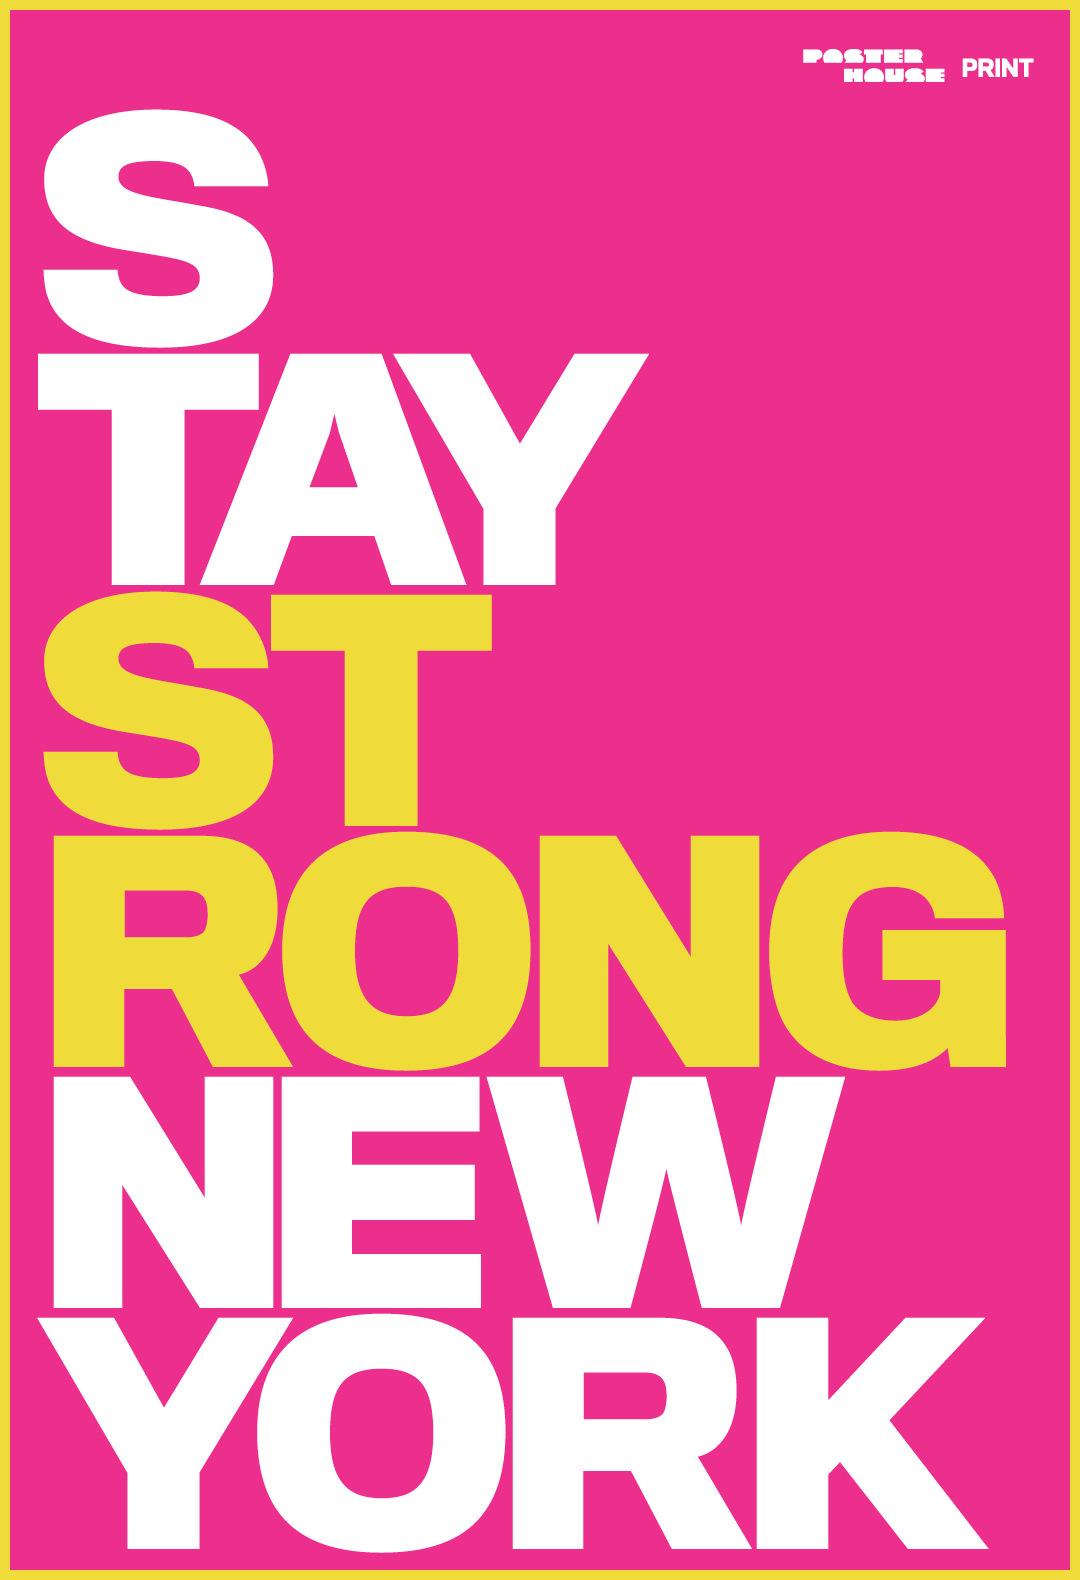 type-based poster with stacked words stay strong new york in yellow and white on a pink background